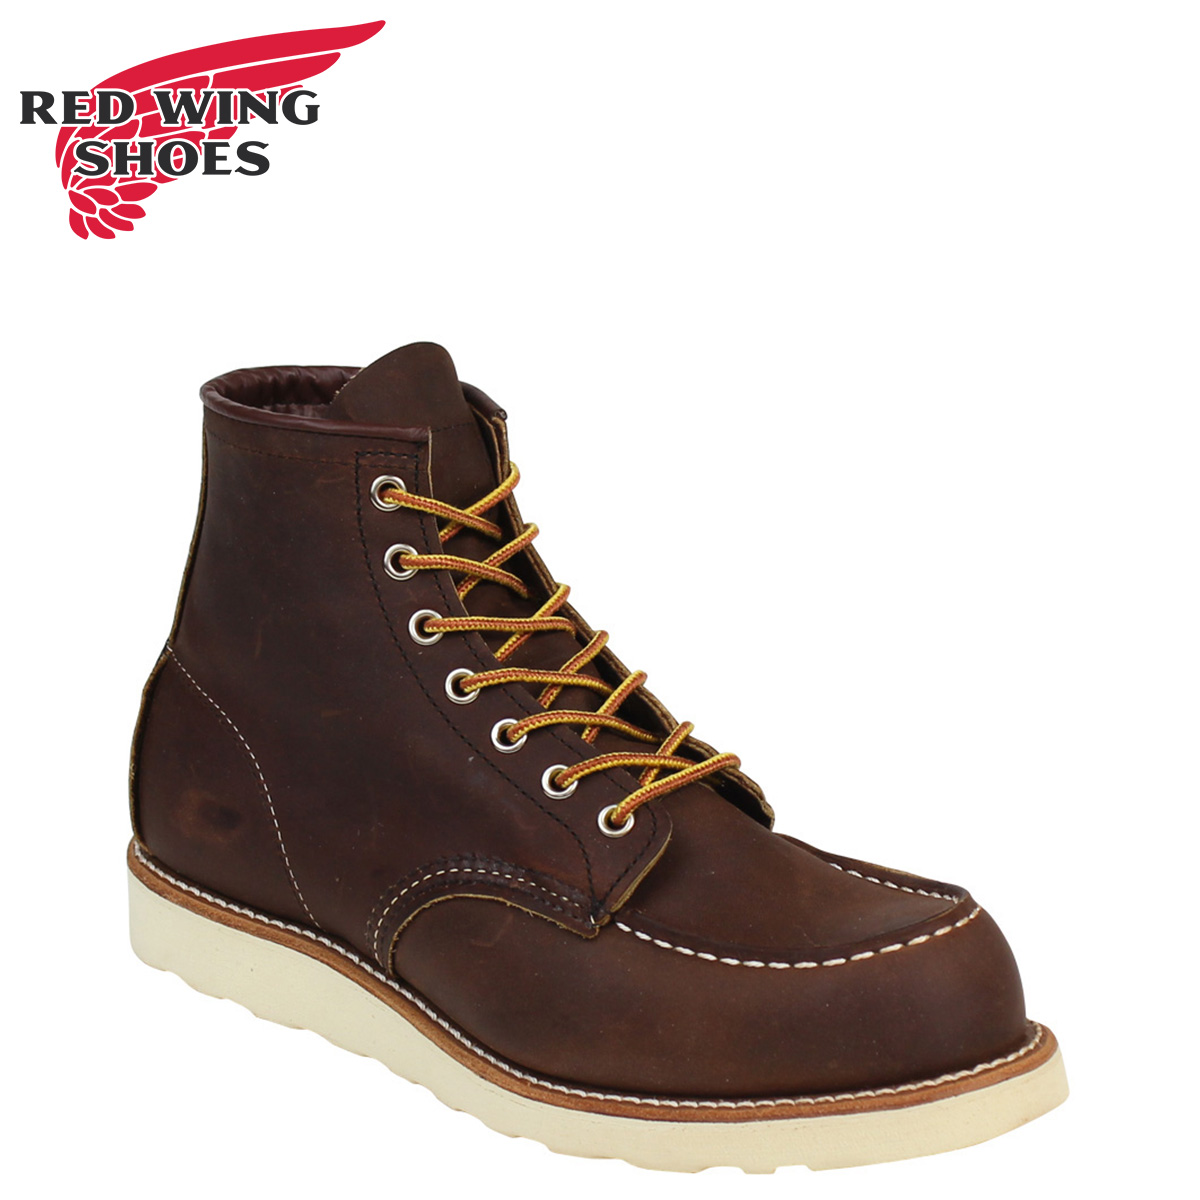 eb596d5a952 RED WING red wing Irish setter boots 6INCH CLASSIC MOC 6 inches classic  mock D Wise 8880 redwing men